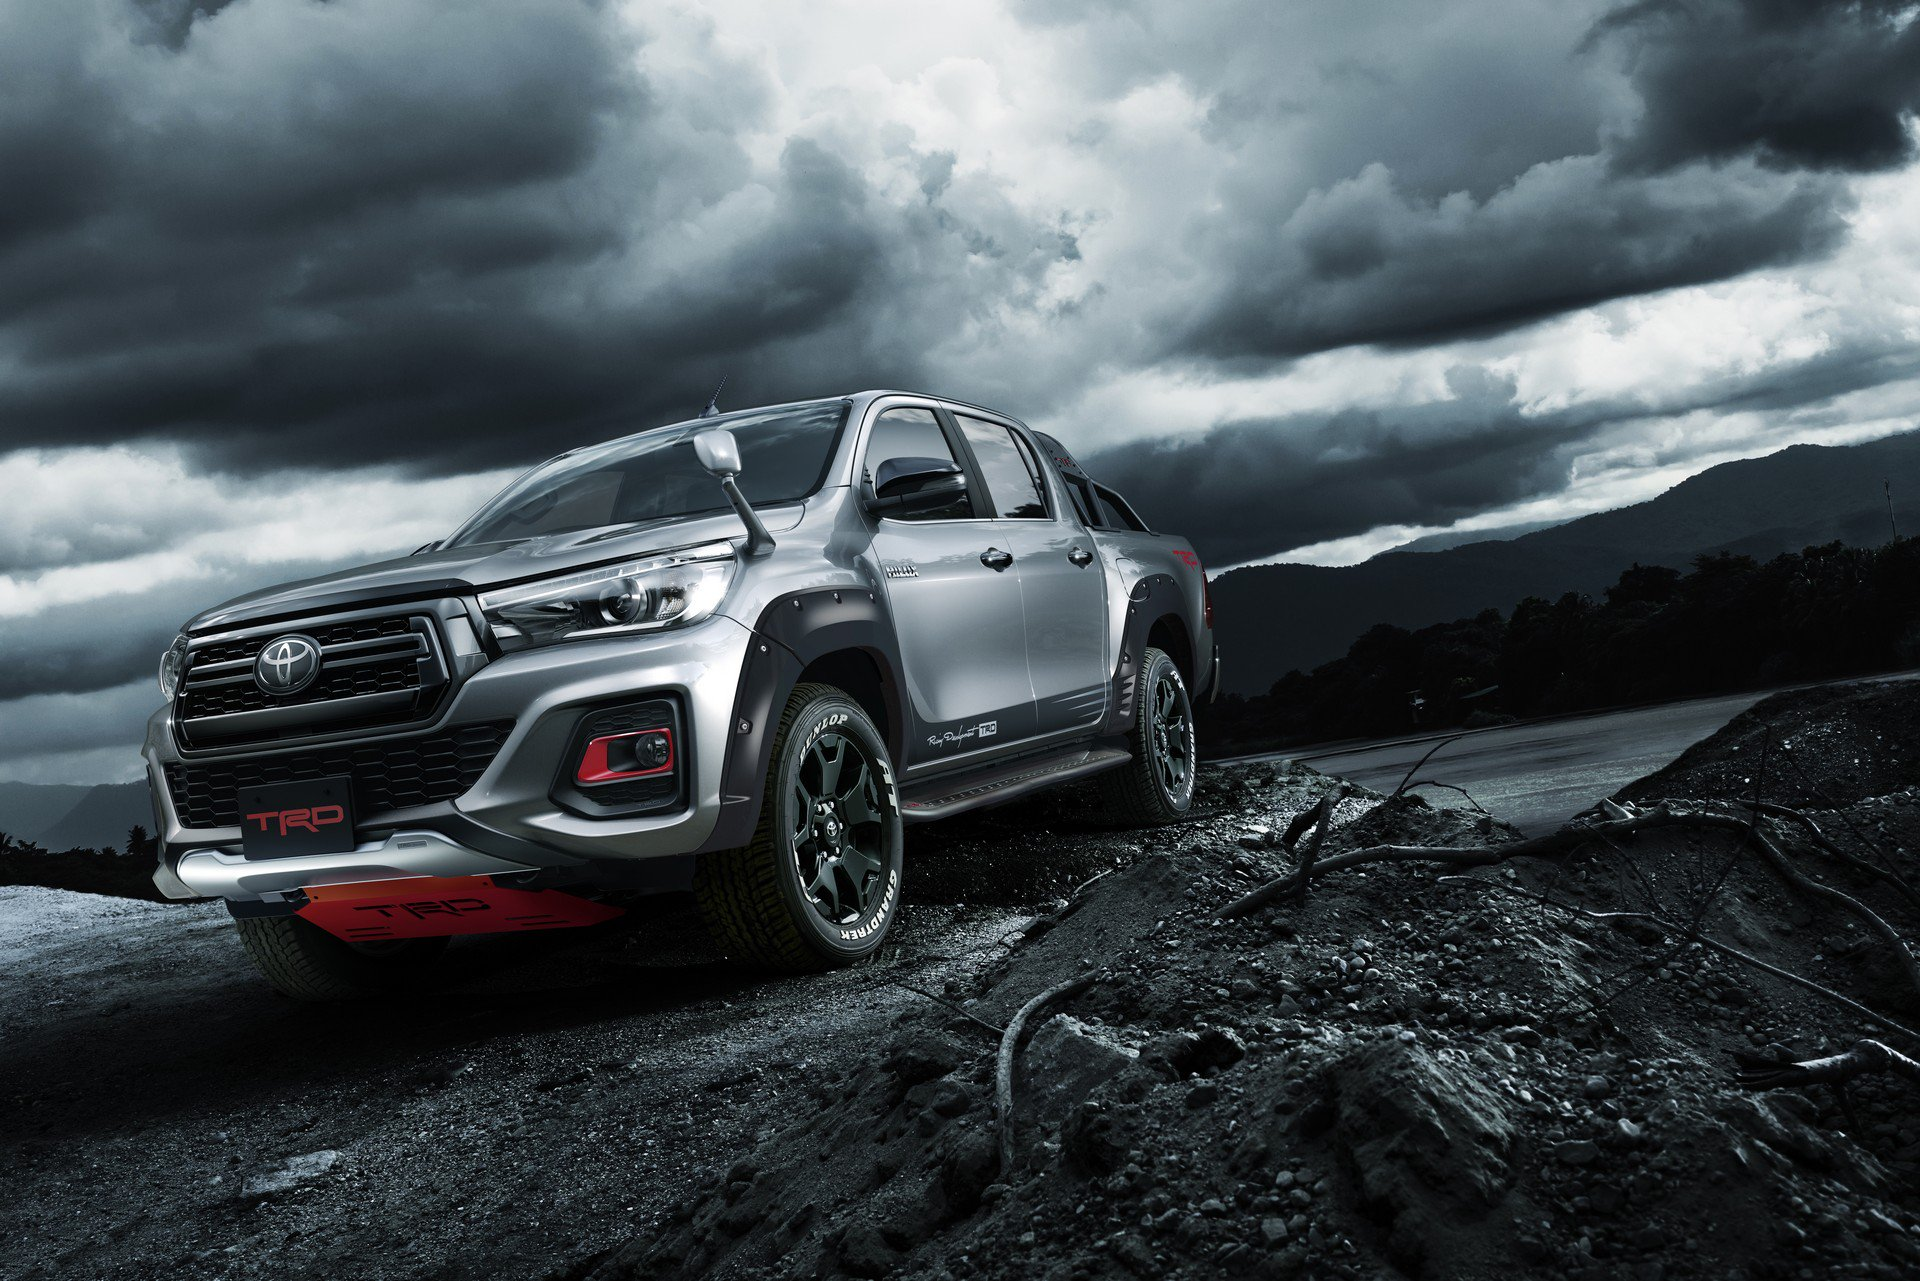 Toyota Hilux Black Rally Edition (2)